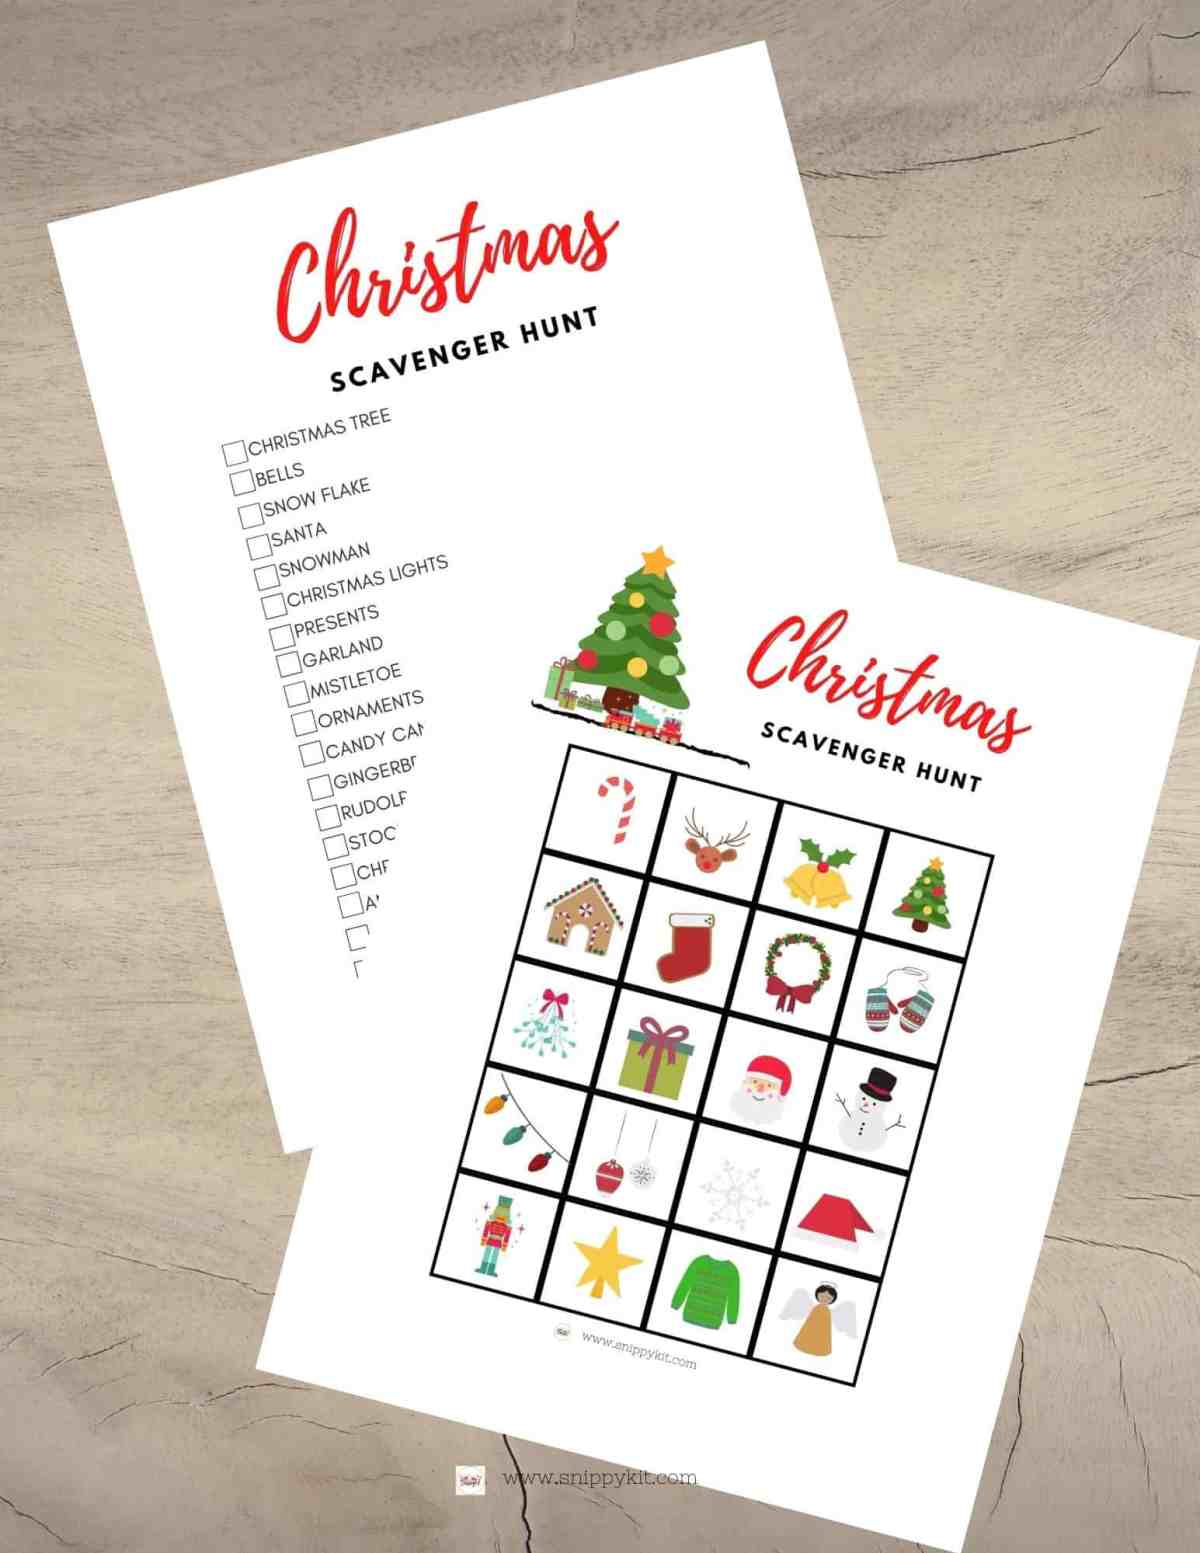 Driving around to look at Christmas lights has never been so fun with this Free Christmas Scavenger Hunt Printable.